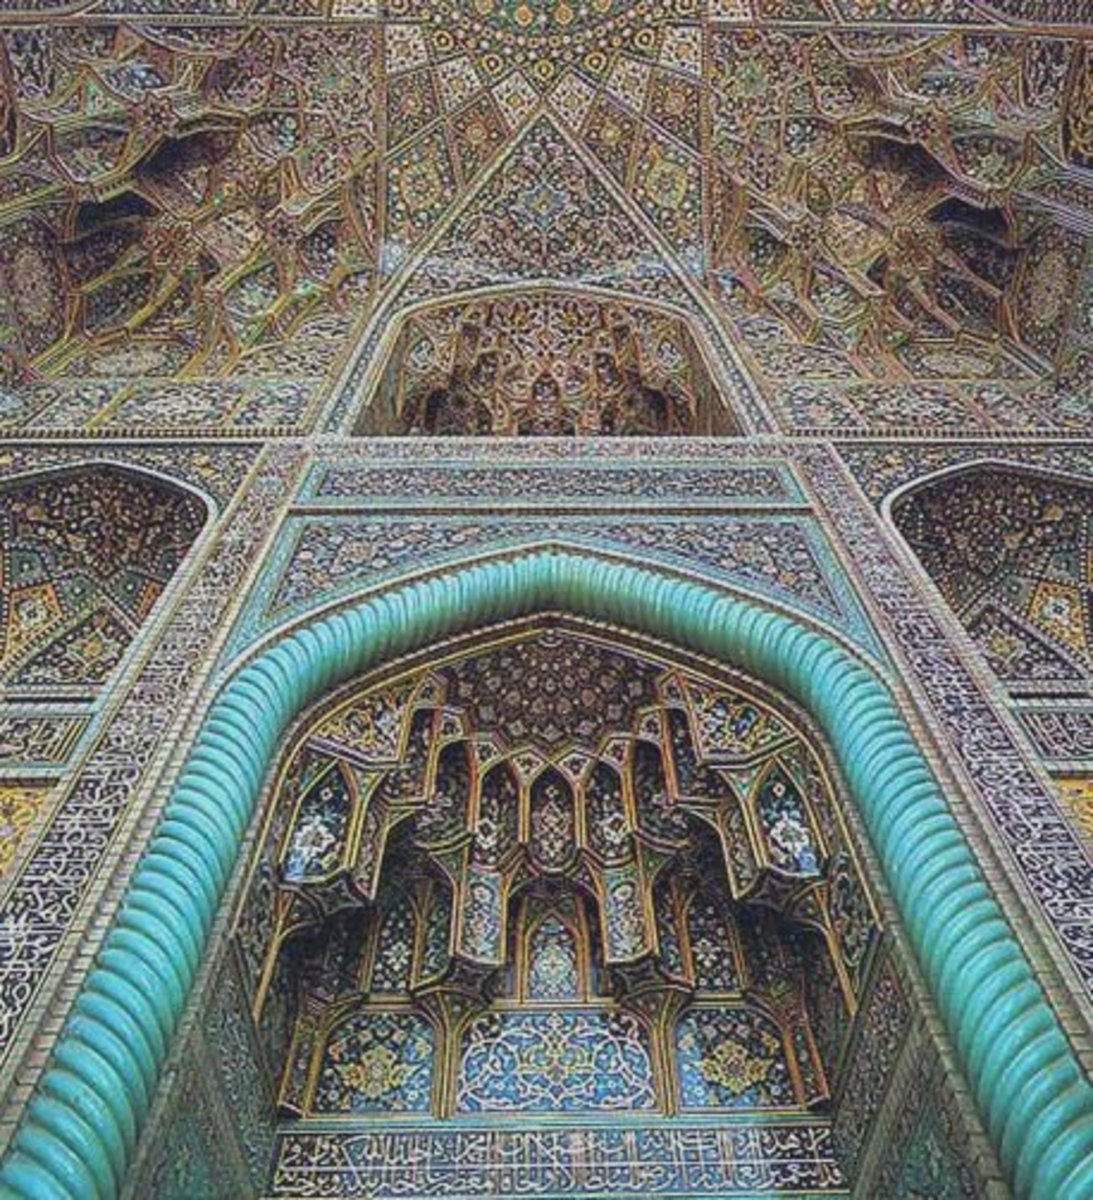 Some beautiful Timurid architecture.